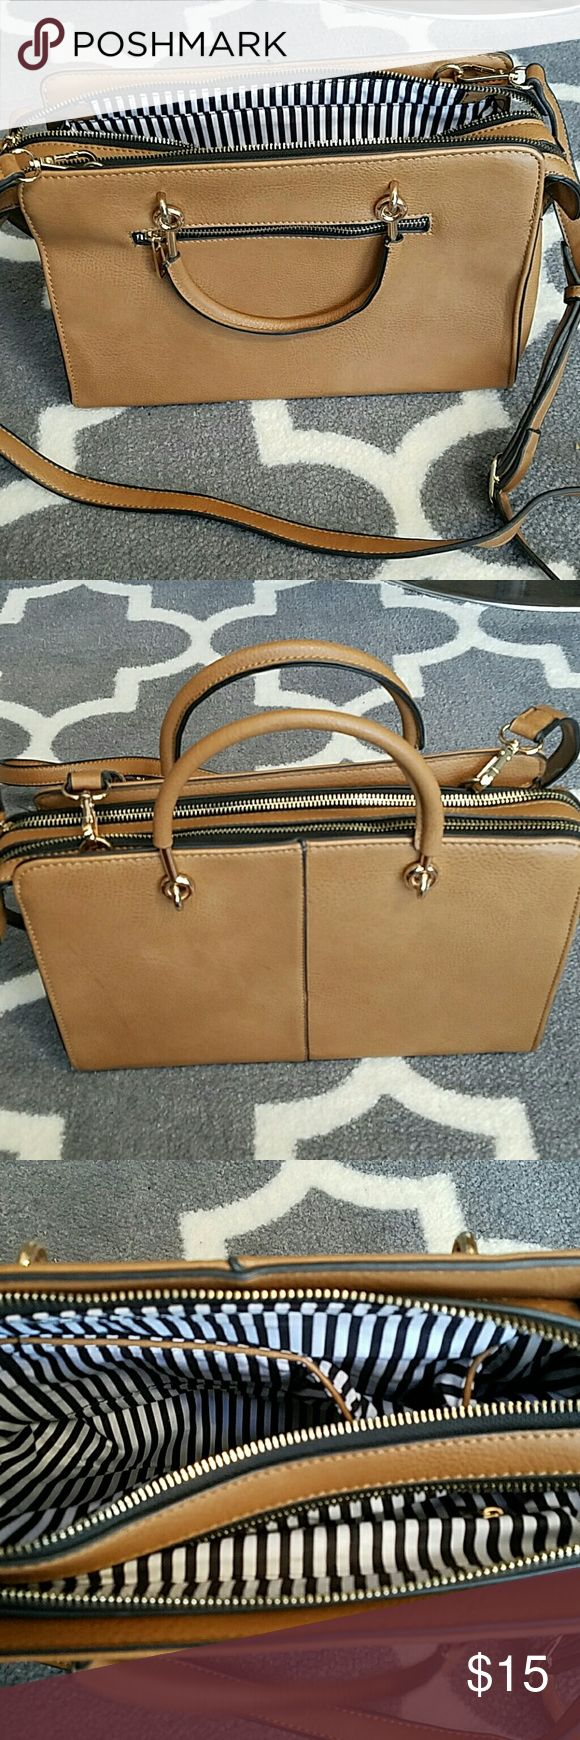 Breifcase Style Structured Handbag Cognac colored synthetic leather bag. Gold hardware and white and black striped interior. Removeable shoulder strap. Excellent condition inside and out. Great bag for work. Bags